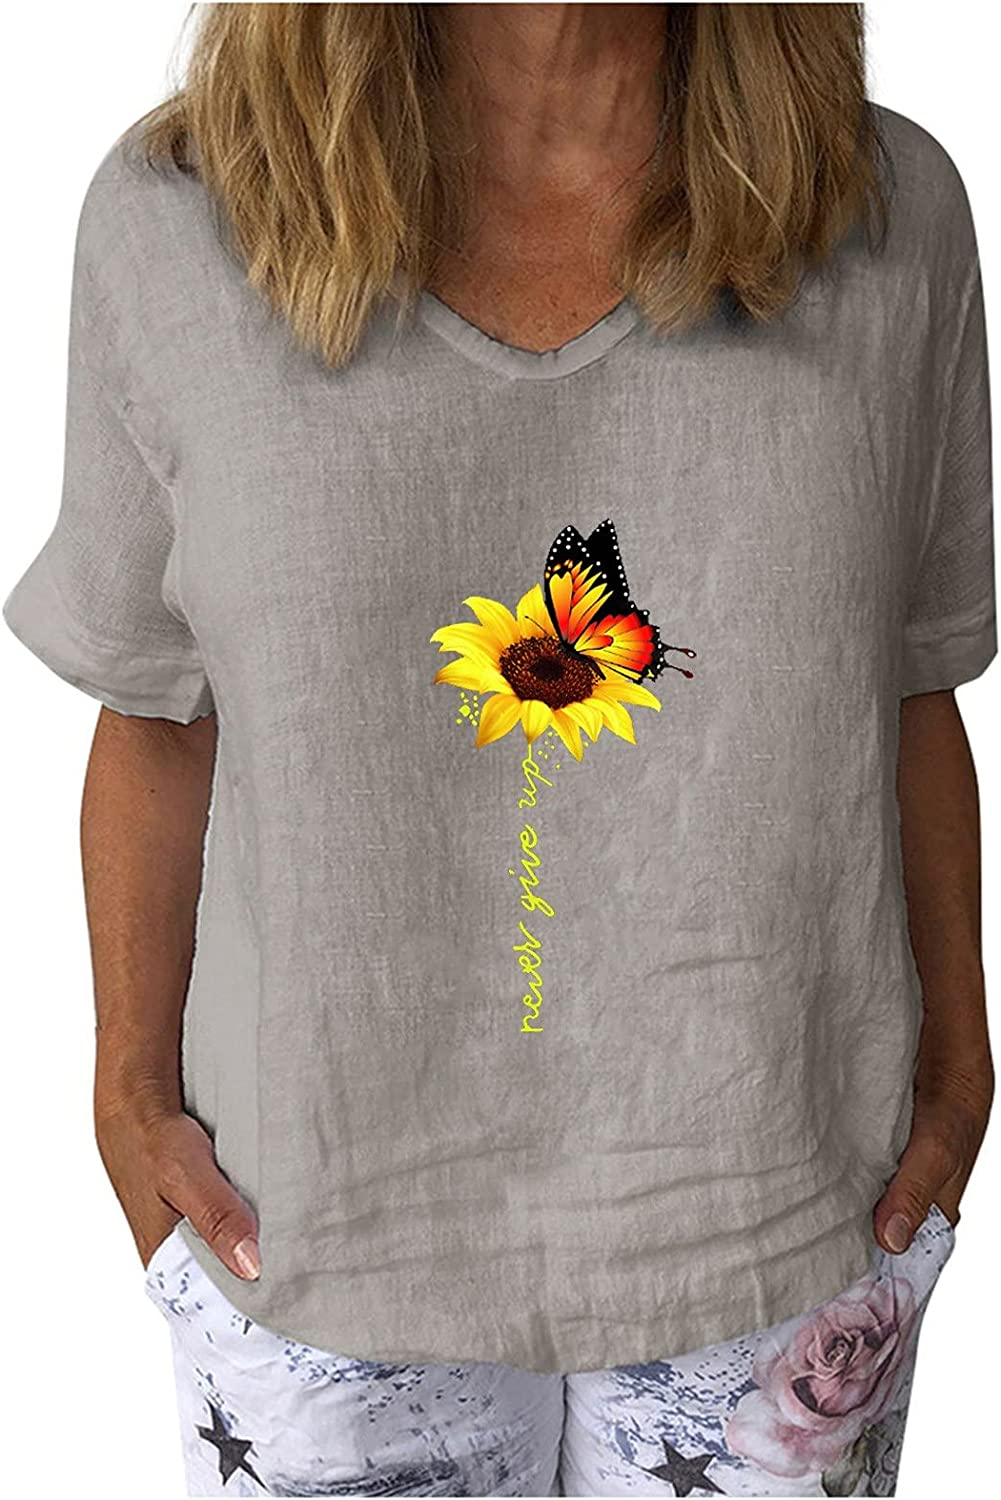 Womens Workout Tops,Summer Plus Size V Neck Short Sleeve T Shirts Casual Sunflower Butterfles Printed Loose Tee Blouses